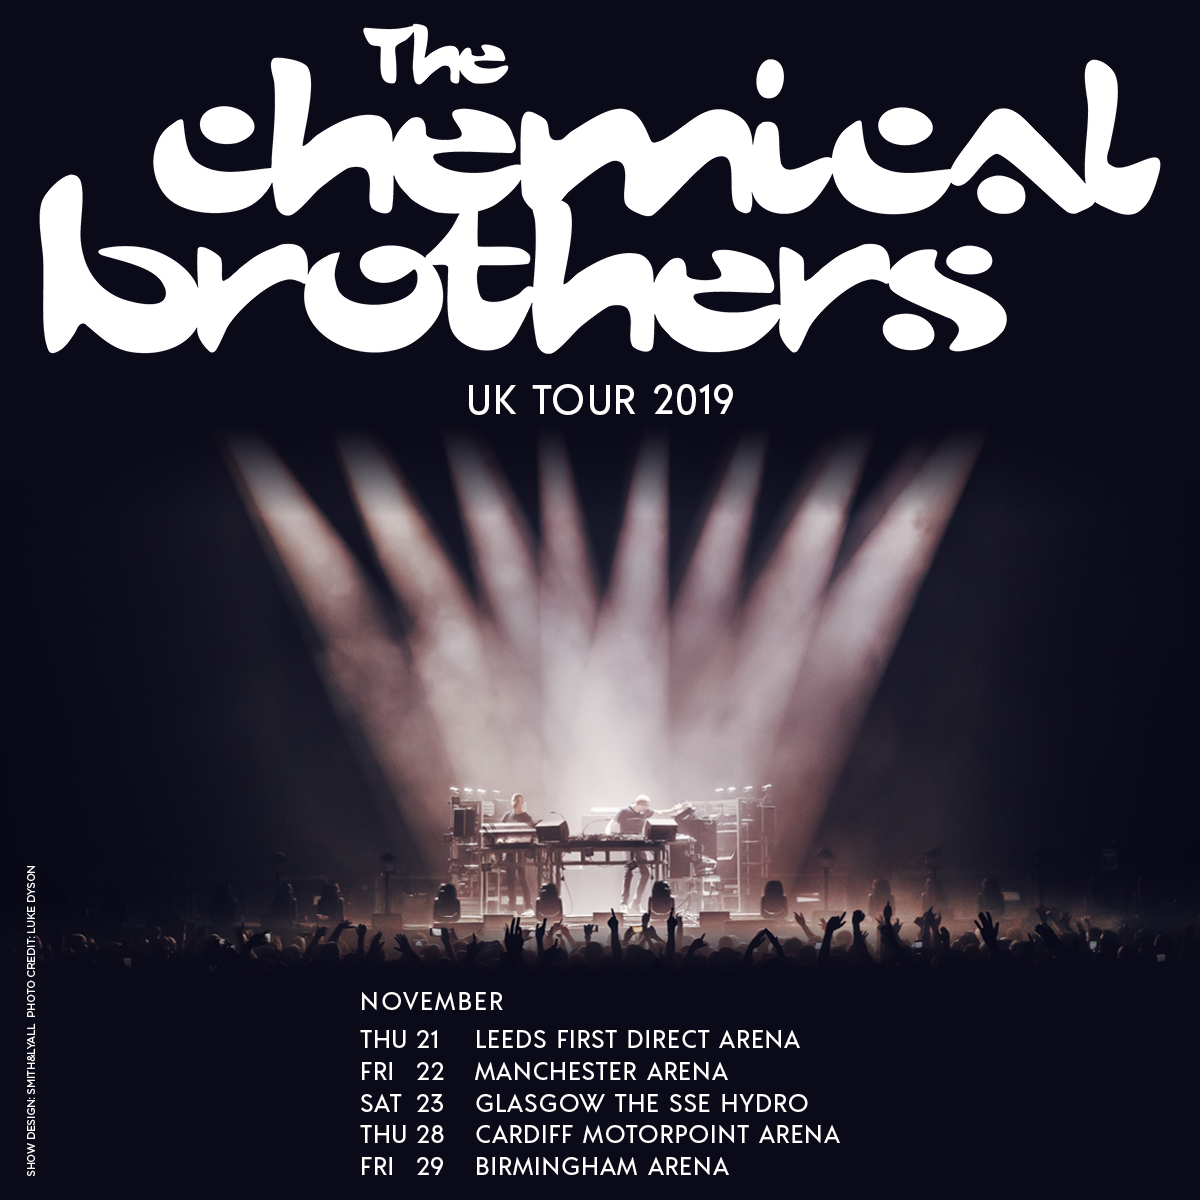 Resultado de imagen de The Chemical Brothers uk tour 2019